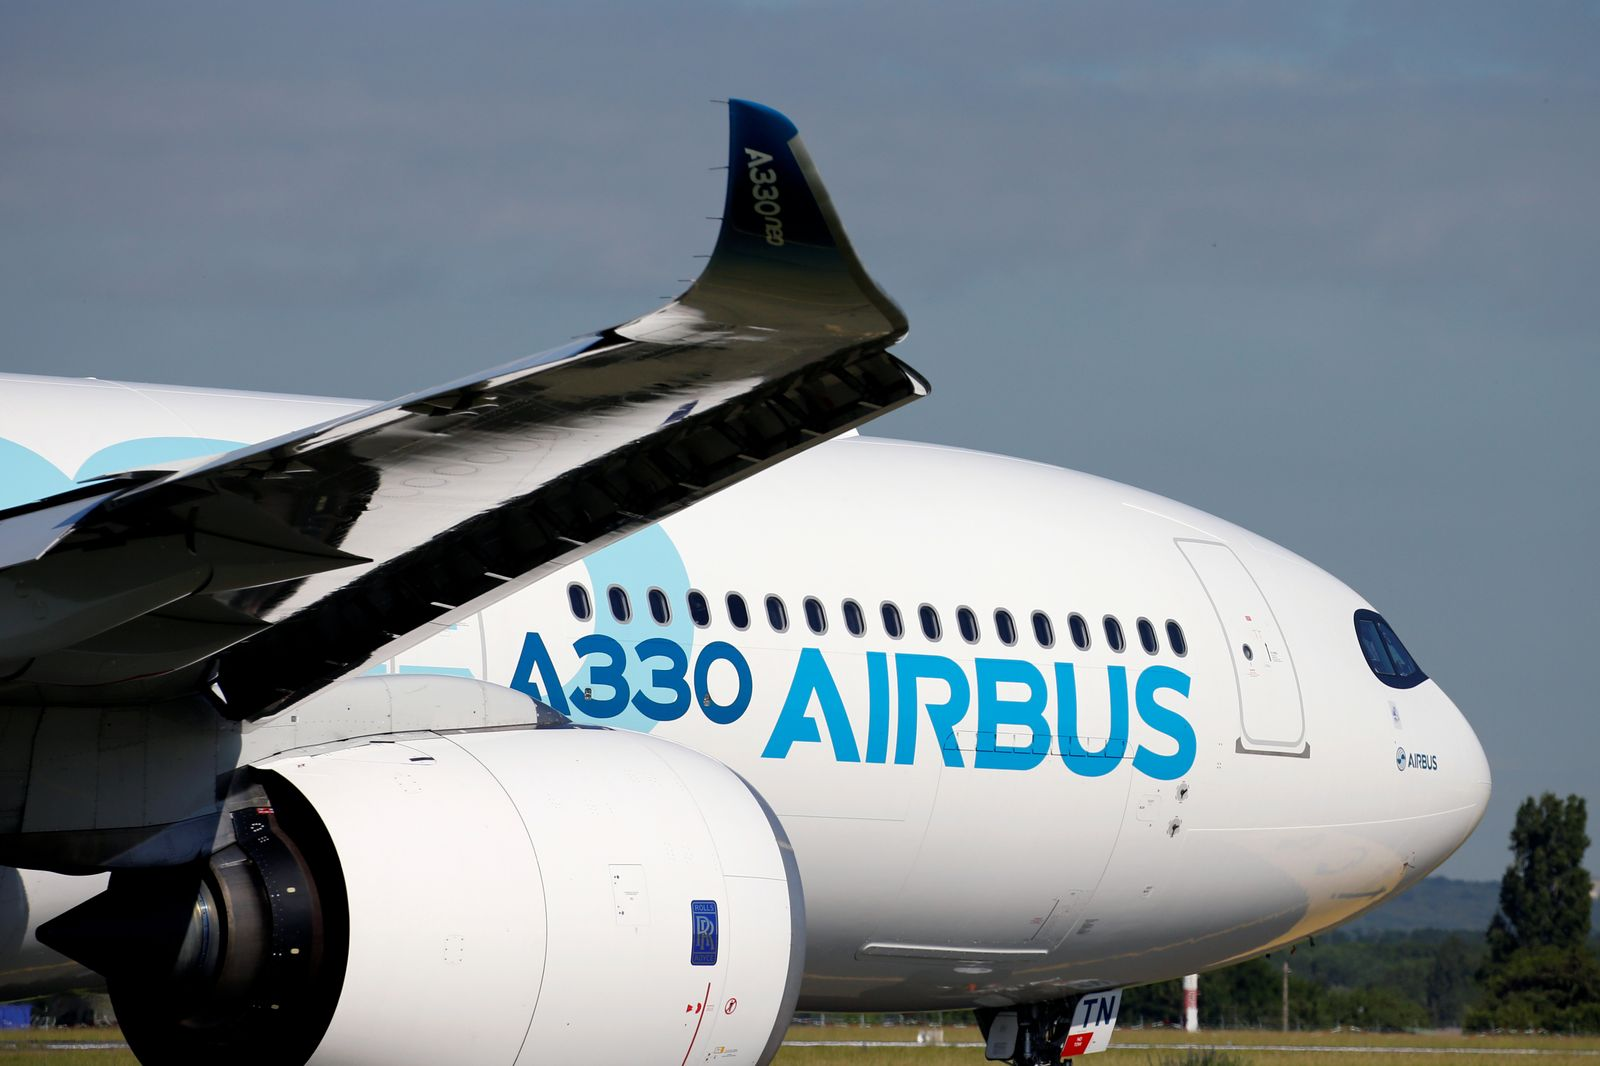 An Airbus A330 NEO is seen on a taxi way during the 53rd International Paris Air Show at Le Bourget Airport near Paris